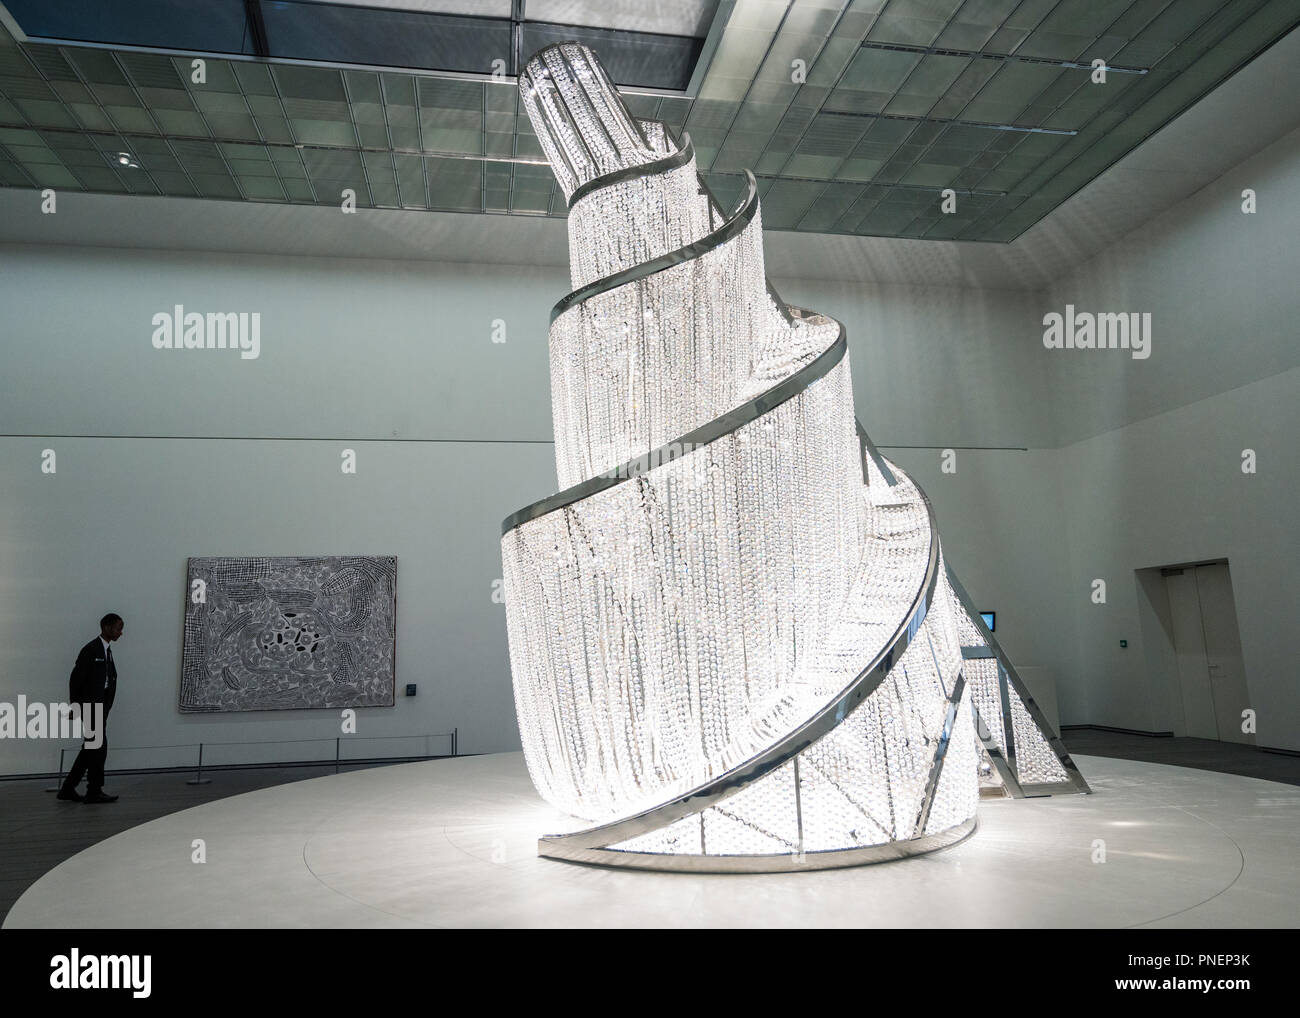 Fountain of Light by Ai Wei wei at Louvre museum Abu Dhabi, United Arab Emirates - Stock Image